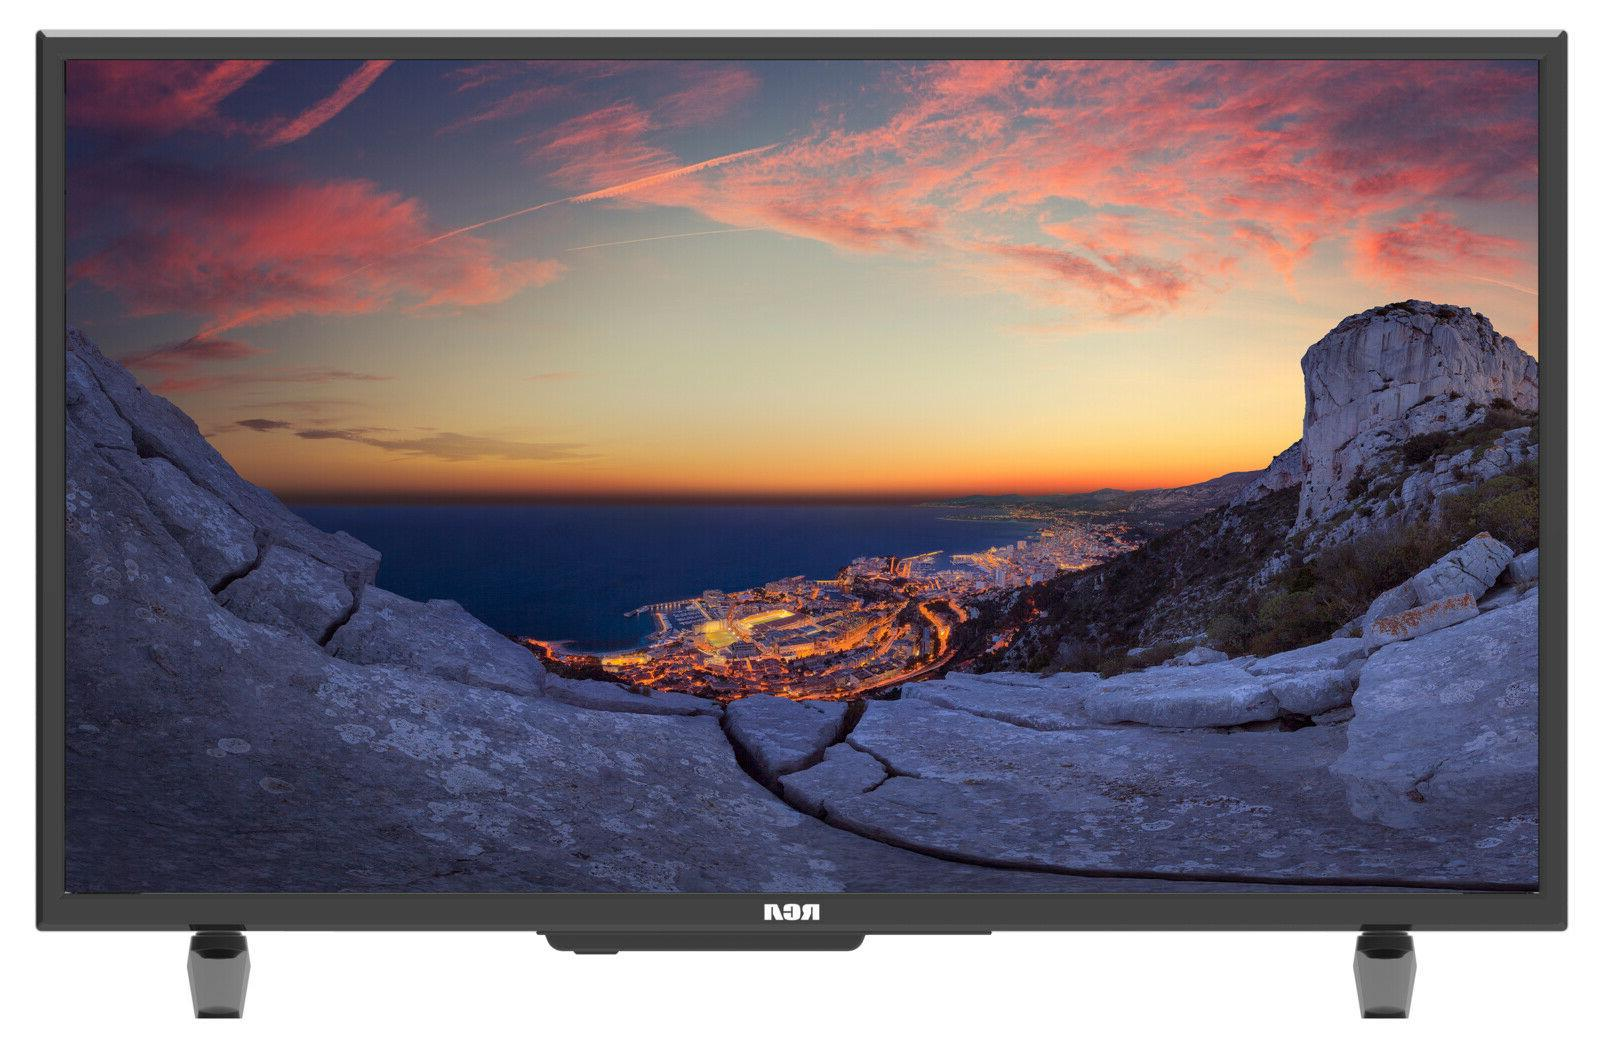 RCA HD LED TV